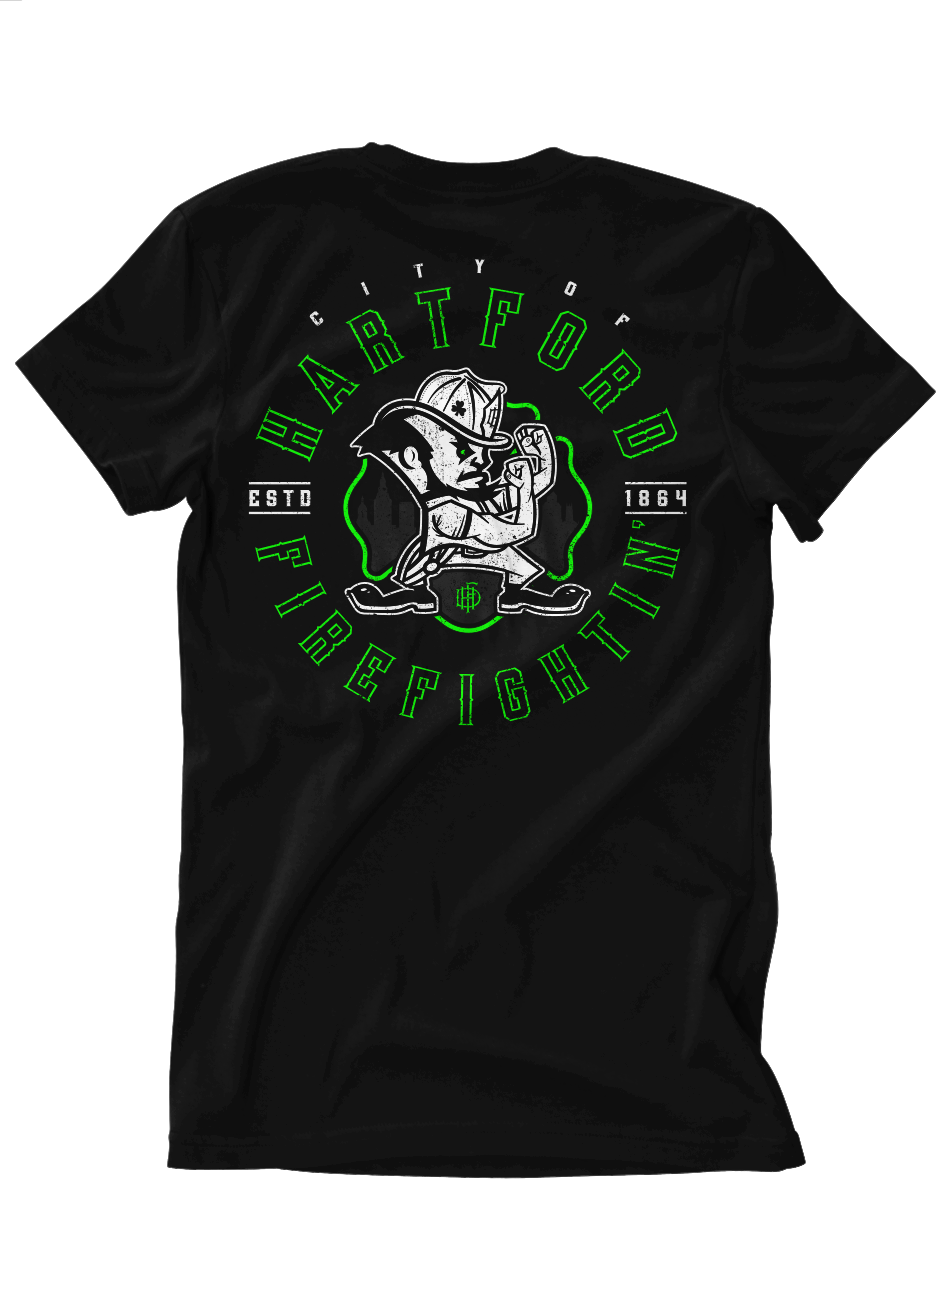 Hartford Fire St Patricks Day 2017 Tee's